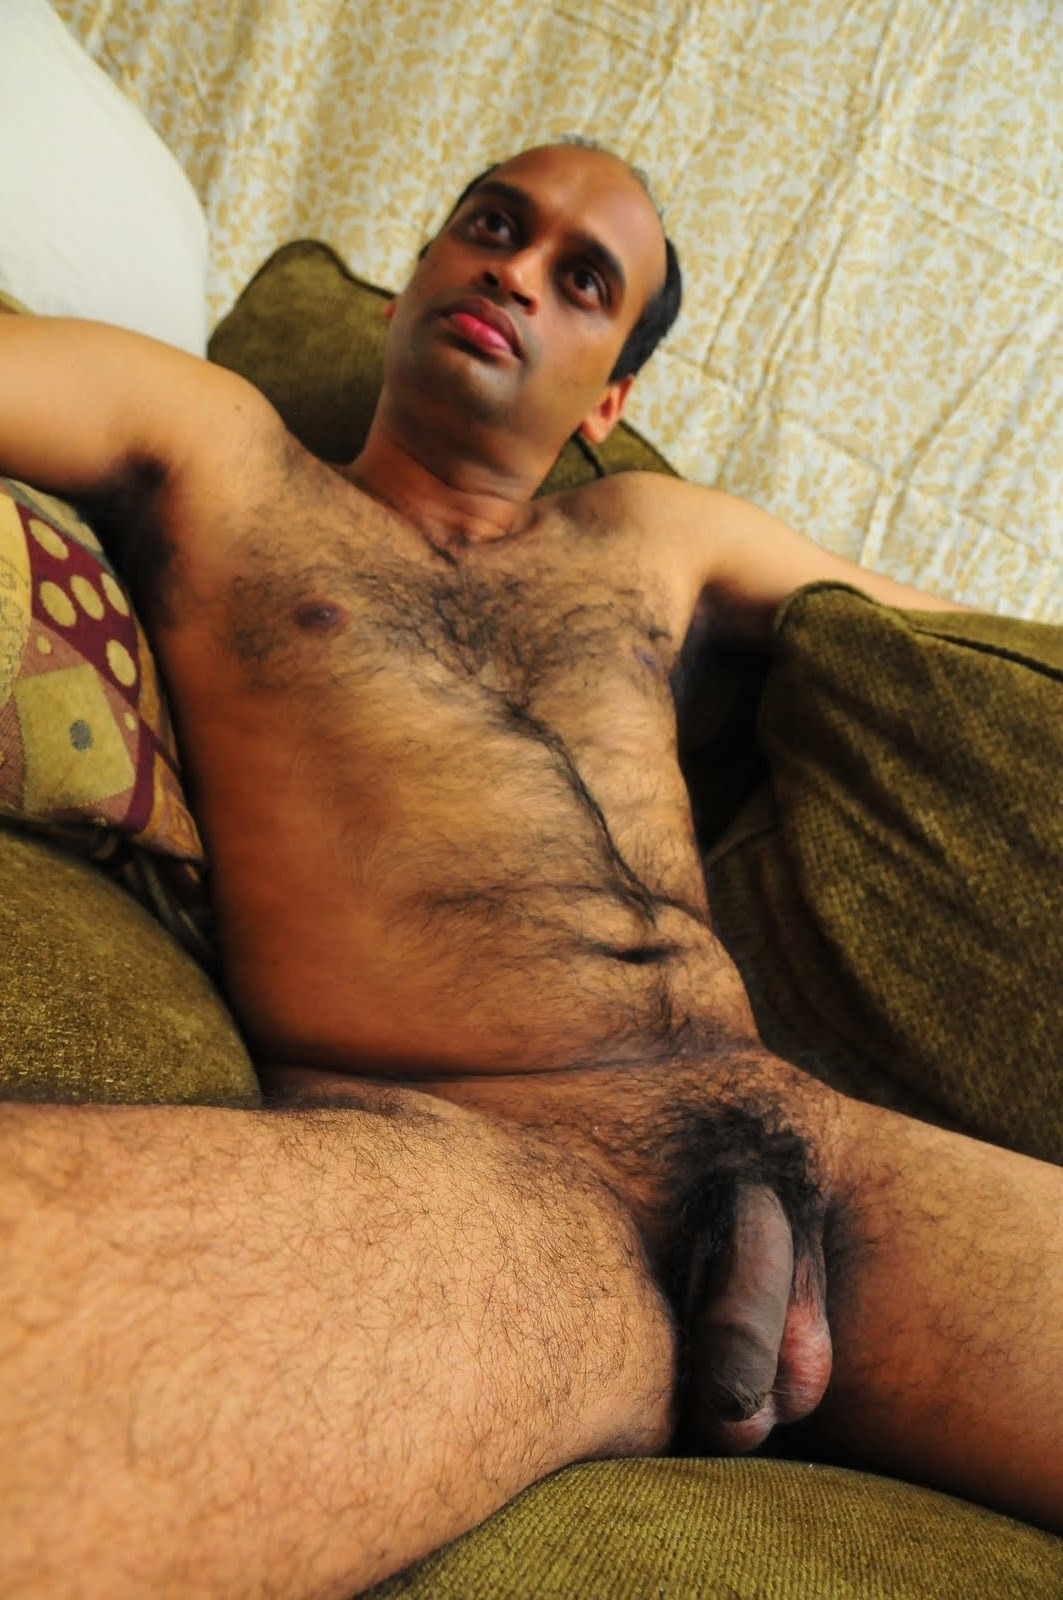 Get nude gay hot indian men uncut top for an uncut bottom porno for free